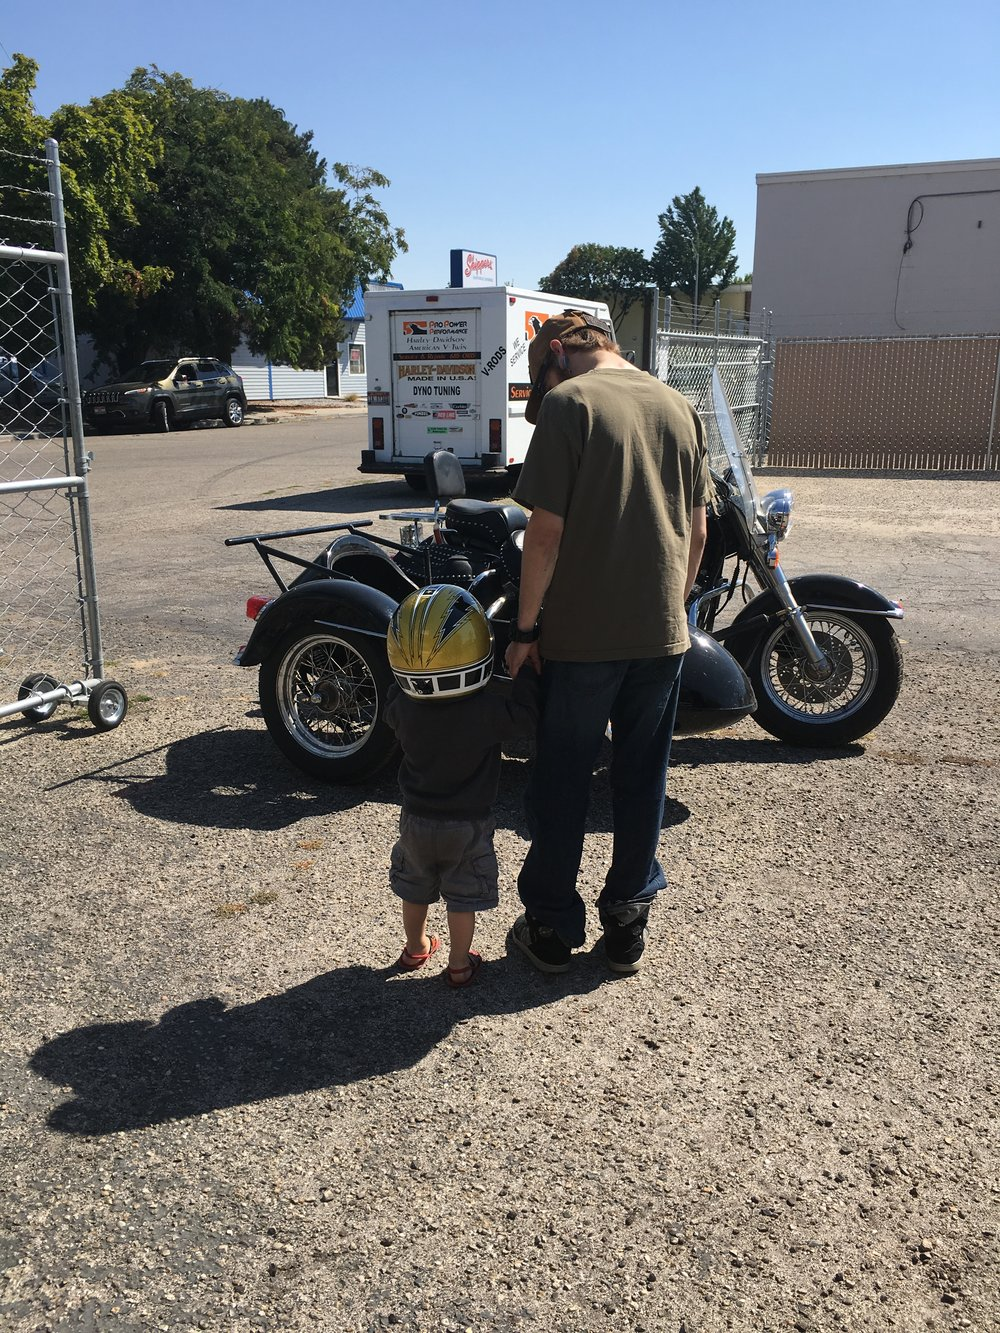 A COUPLE OF AMAZING KIDS (GRANDSON AND SON); STARTING YOUNG WITH HIS FIRST MOTORCYCLE RIDE.